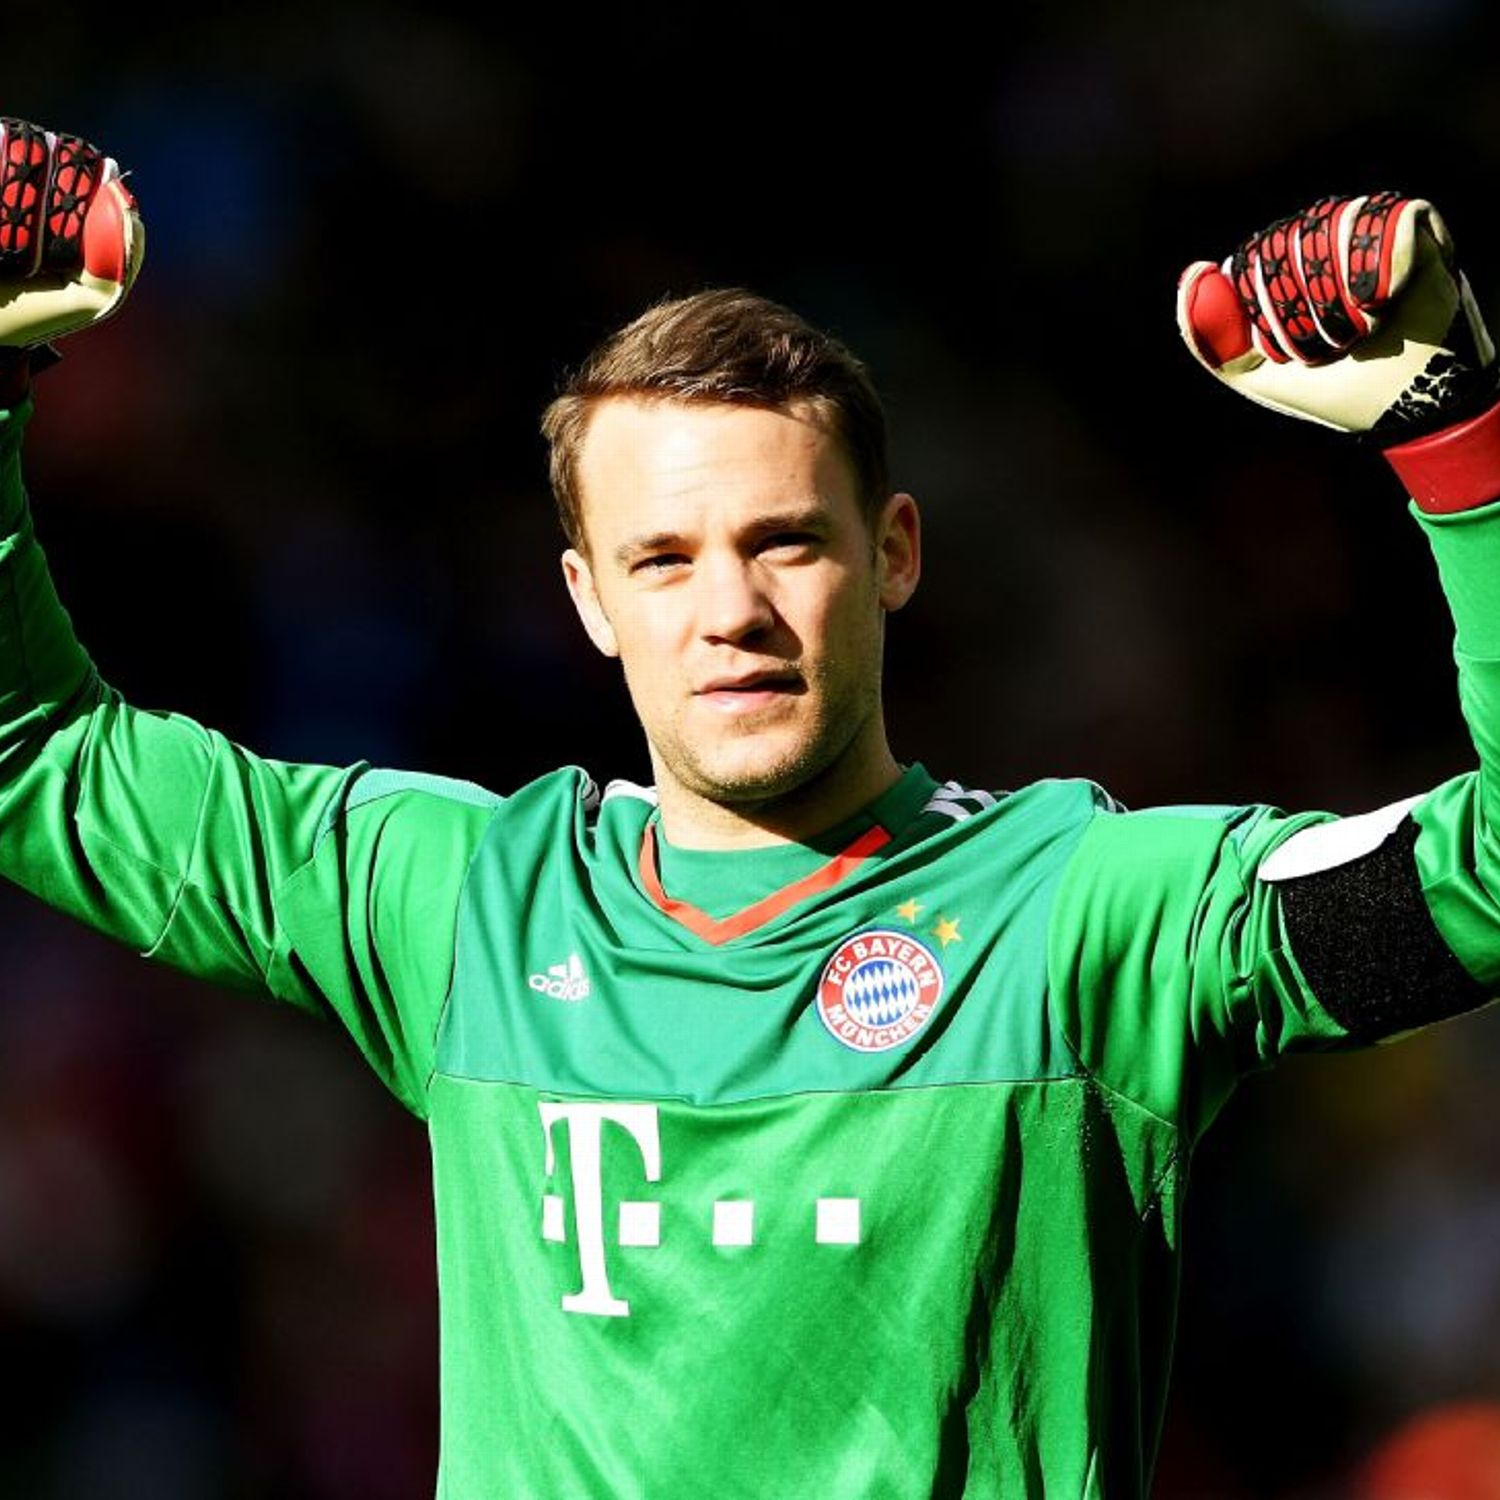 bayern keeper manuel neuer bundesliga race may boost champions league hopes espn fc. Black Bedroom Furniture Sets. Home Design Ideas